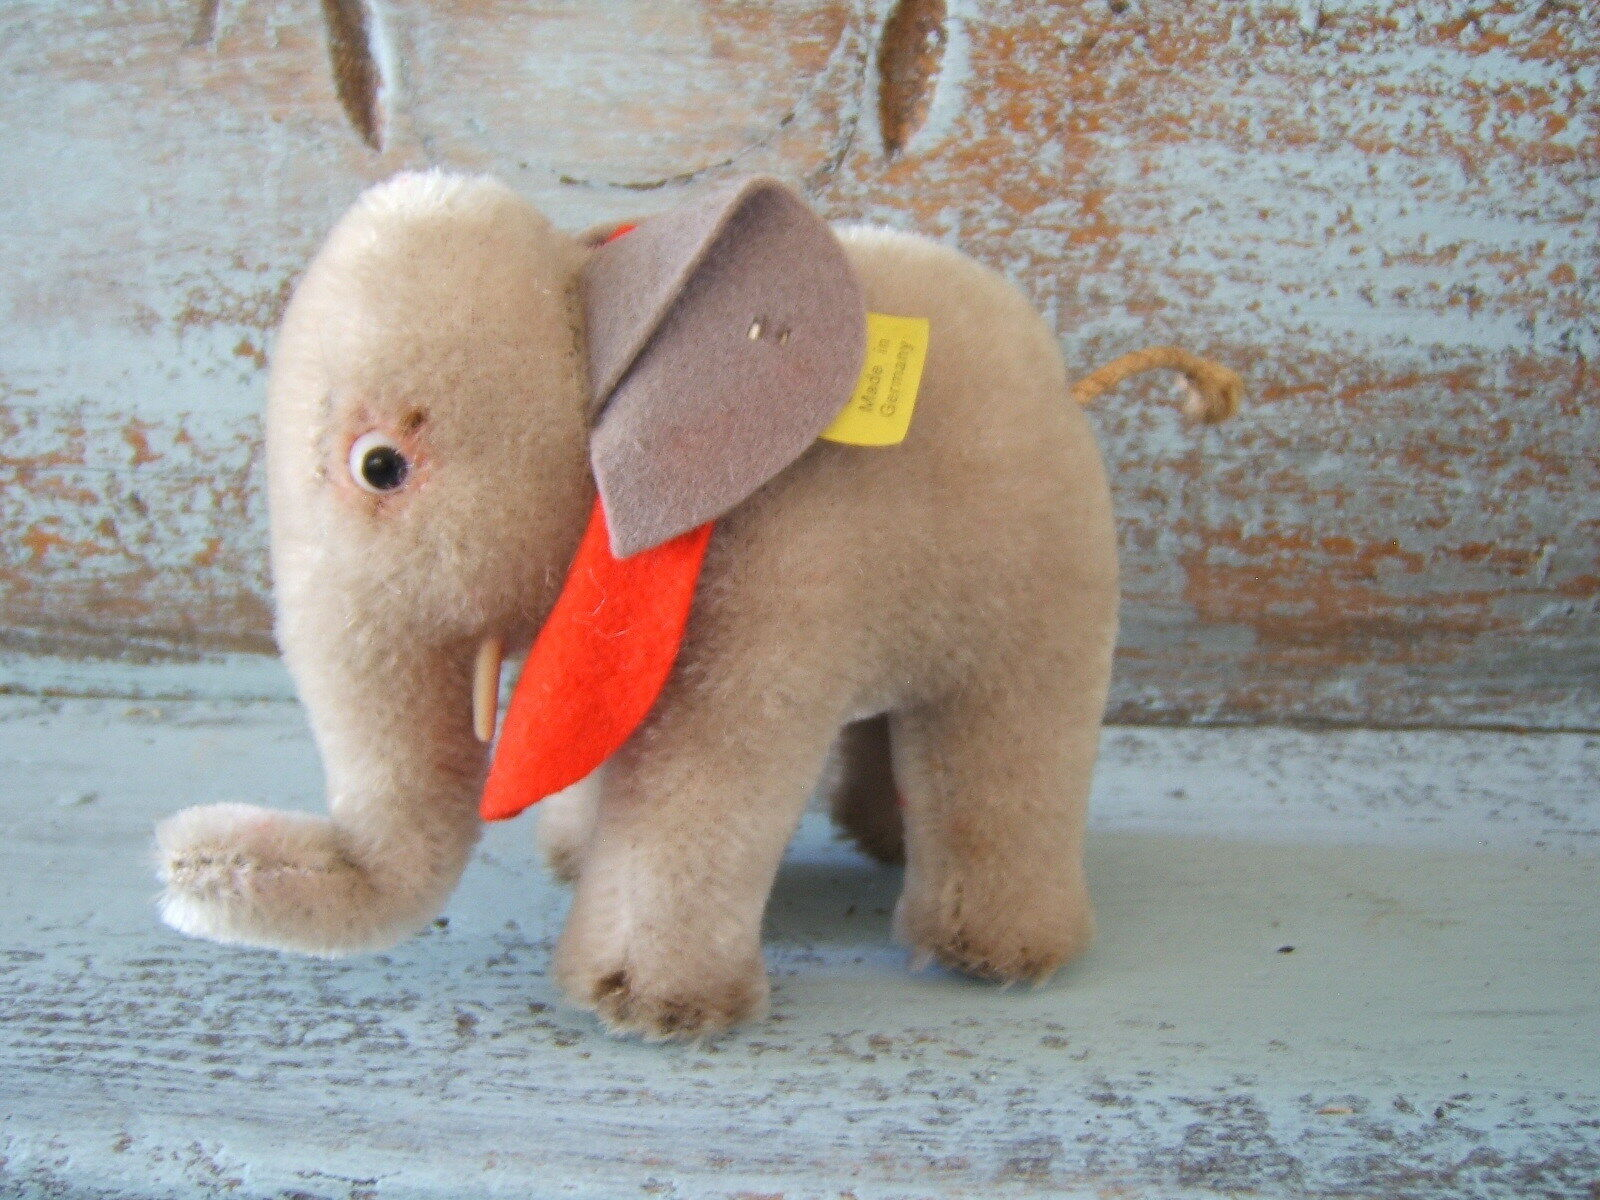 Vintage Steiff Toy Stuffed 4'' Elephant 6310 0 with Original Tag